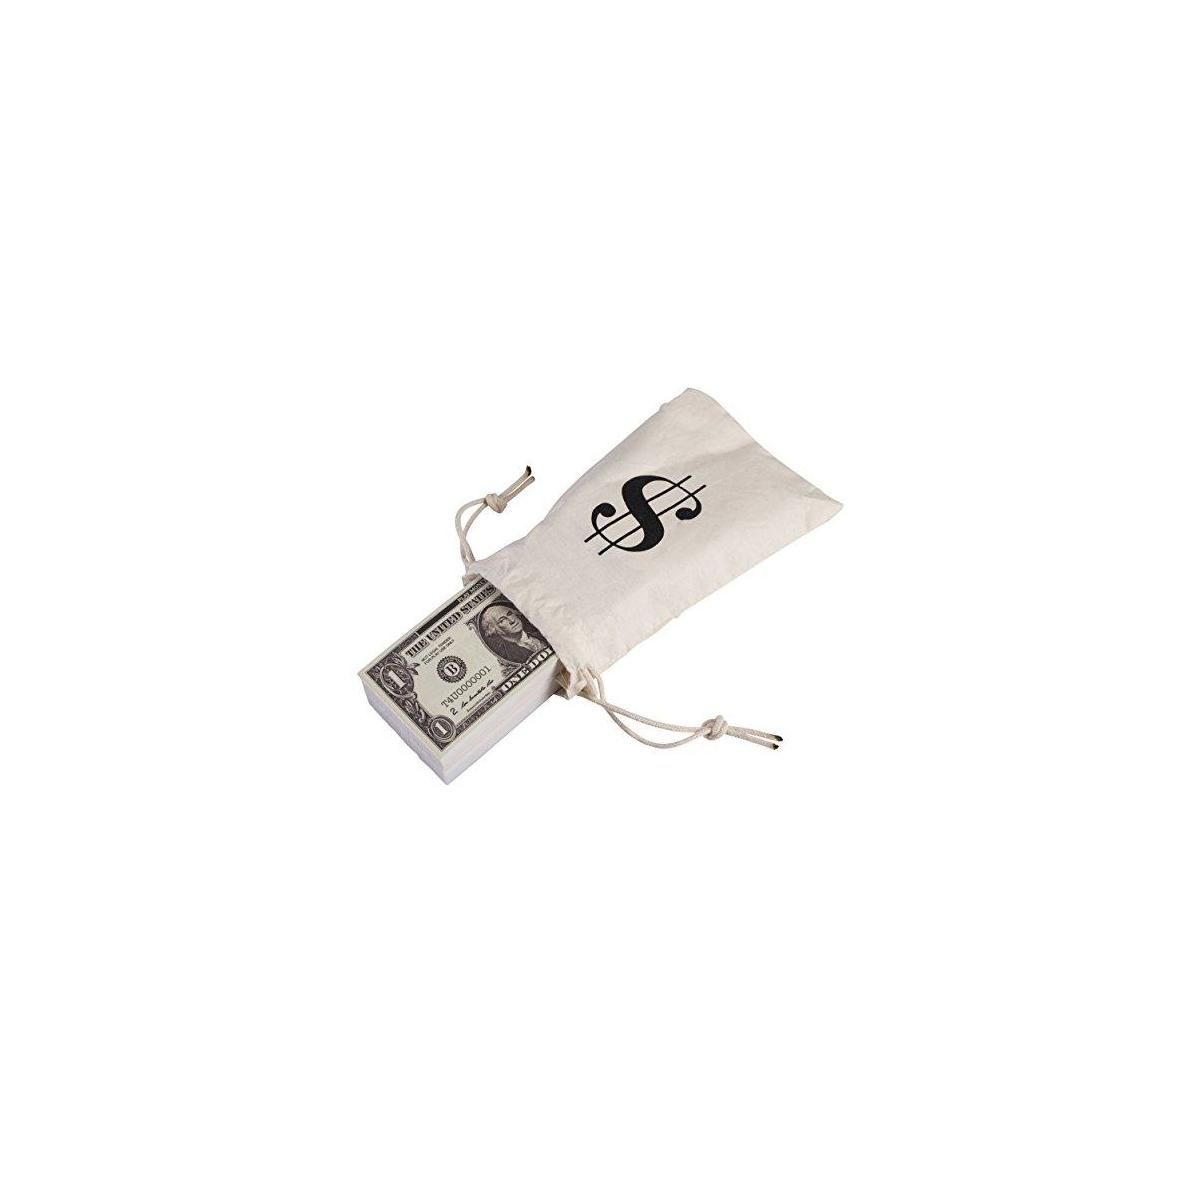 Playing Money Double Sided Dollars Paper Sack Pretend Wallet That Looks Real for Kids